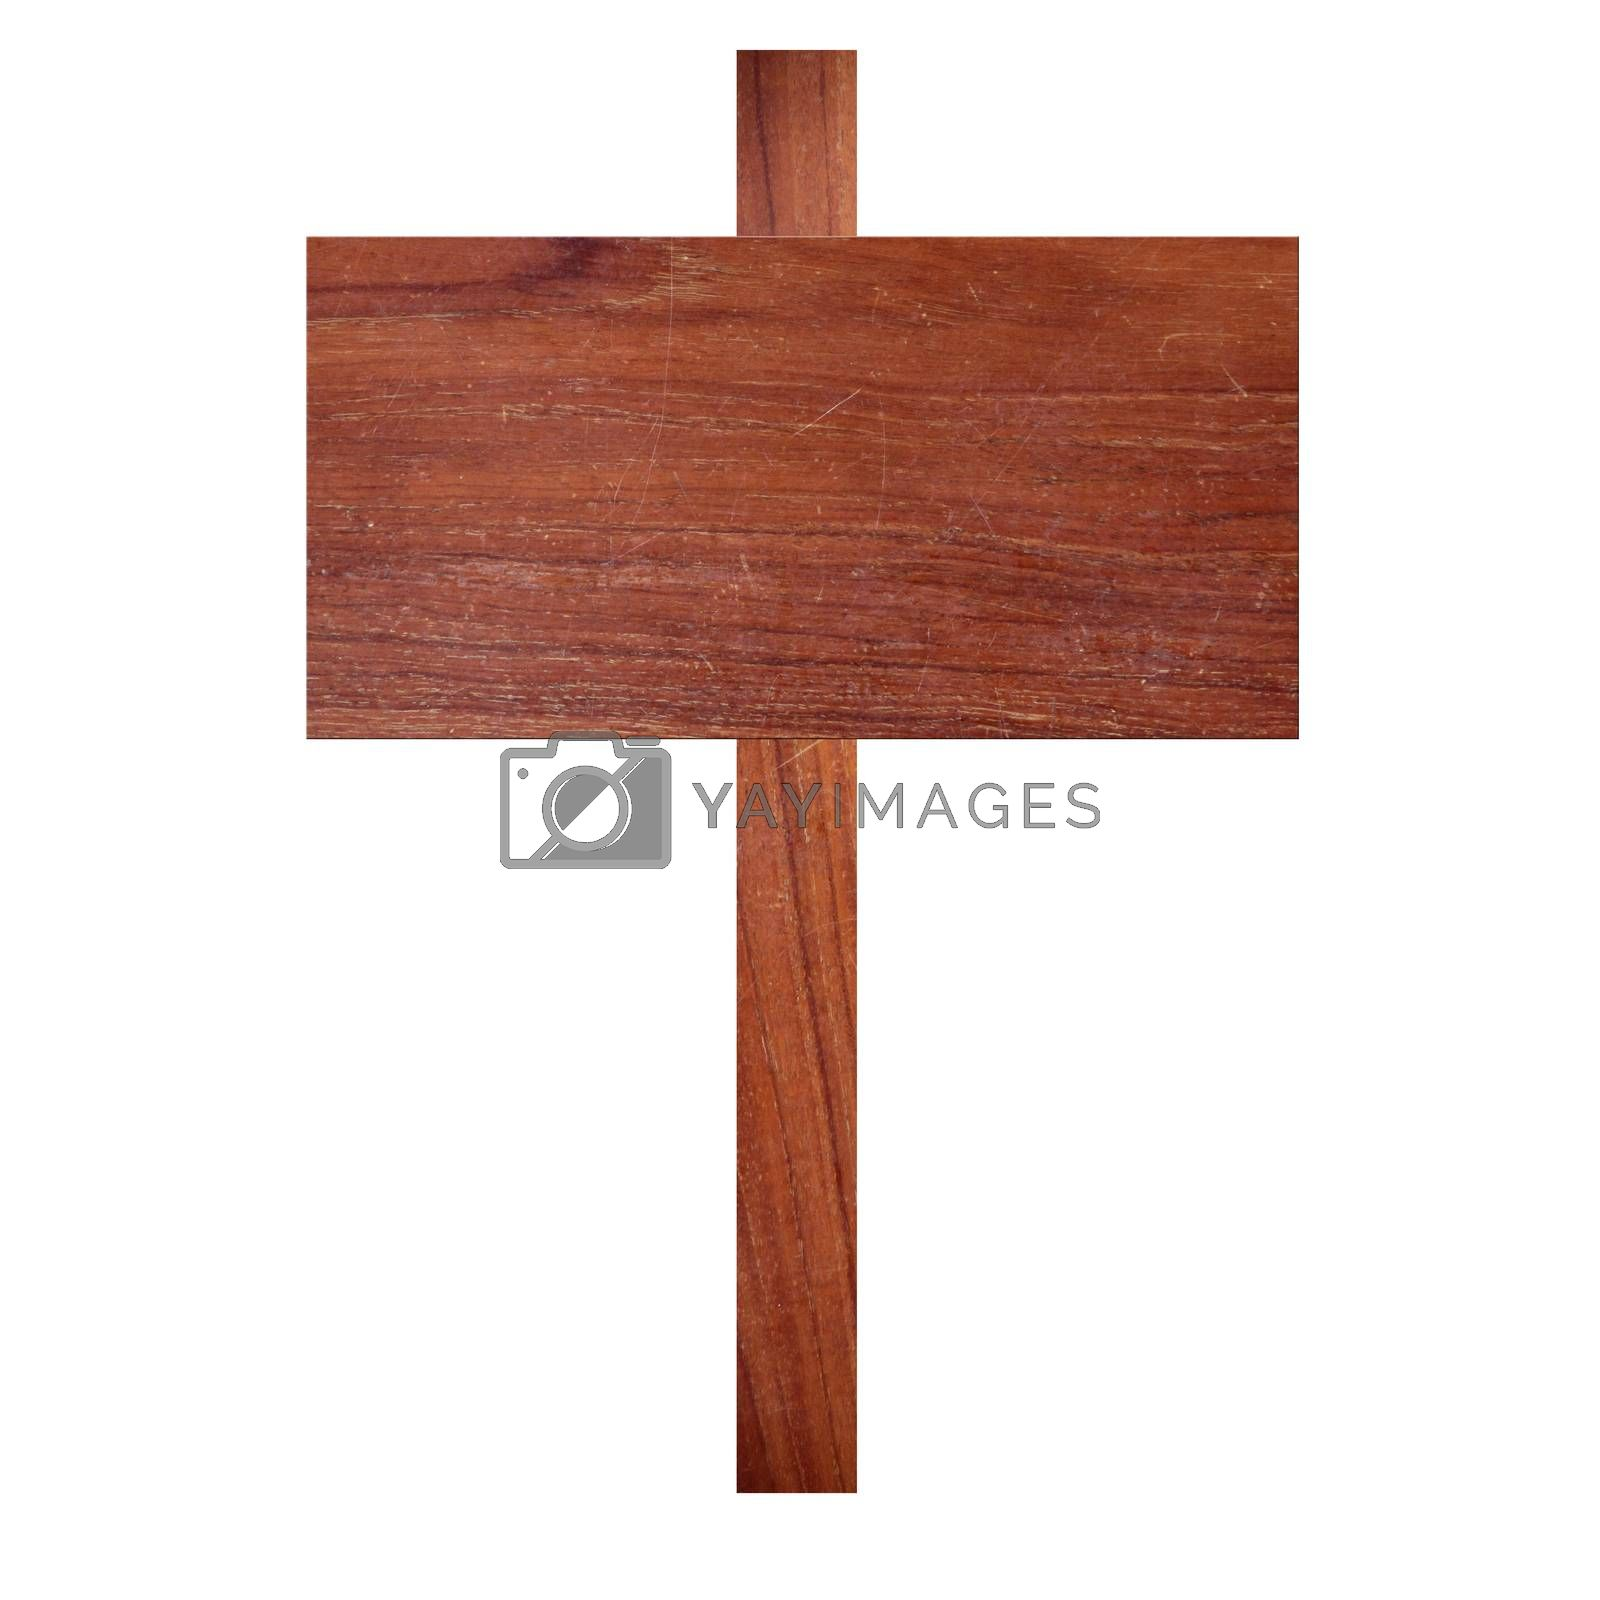 old wooden signboard isolated on white background.